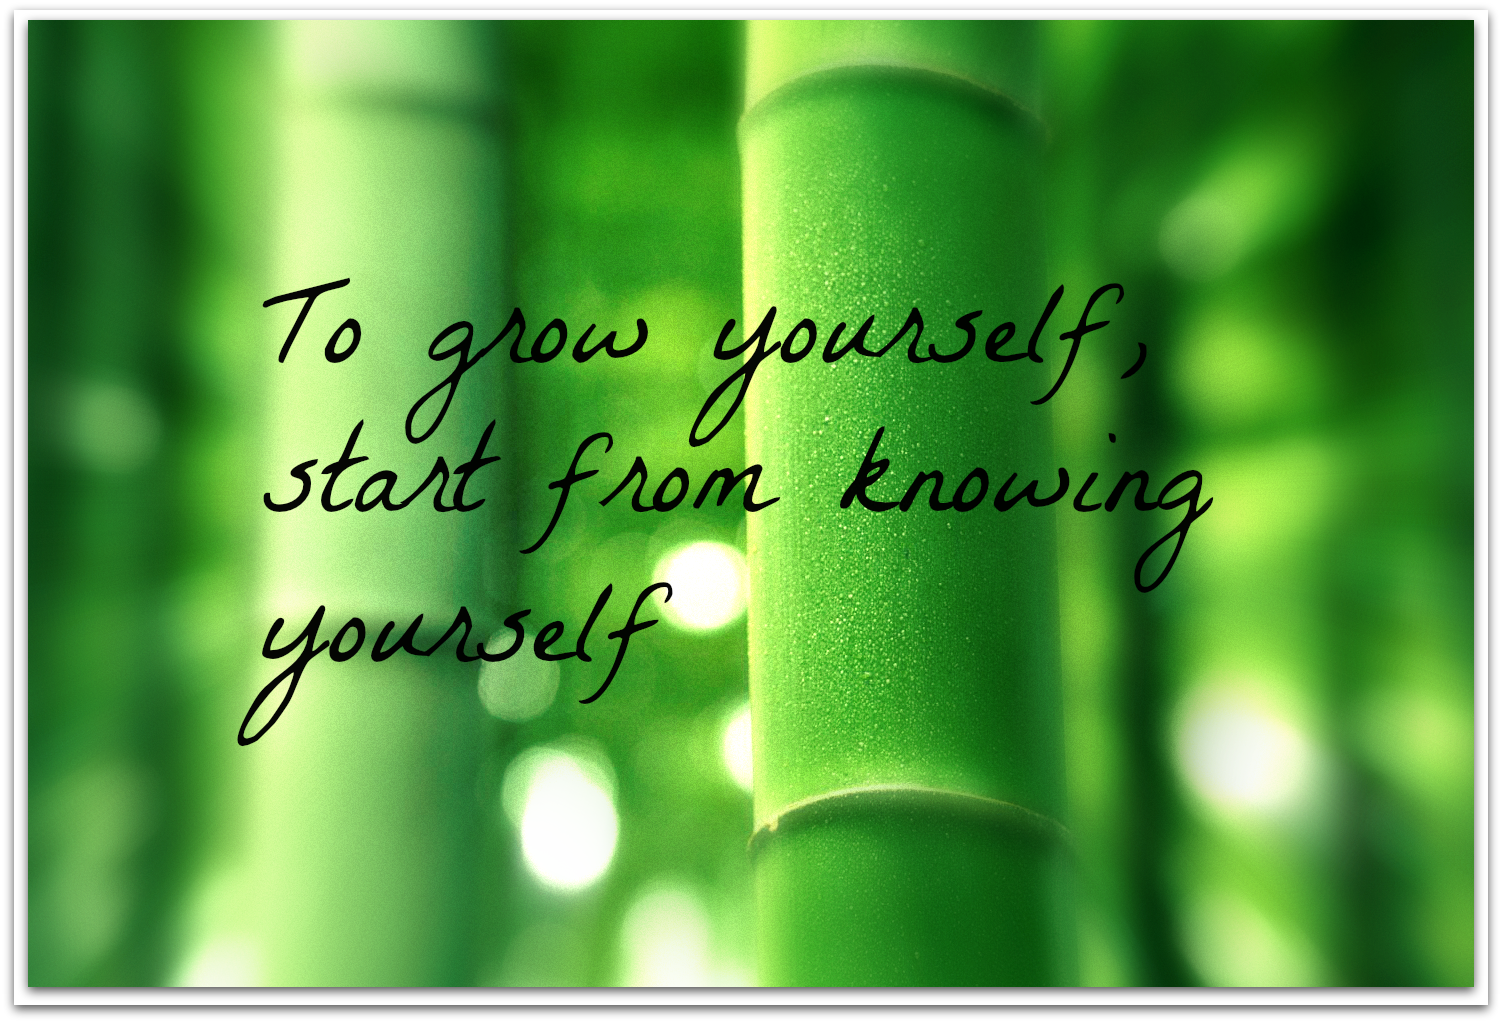 Personal Development Quotes 61 Beautiful Growth Quotes And Sayings